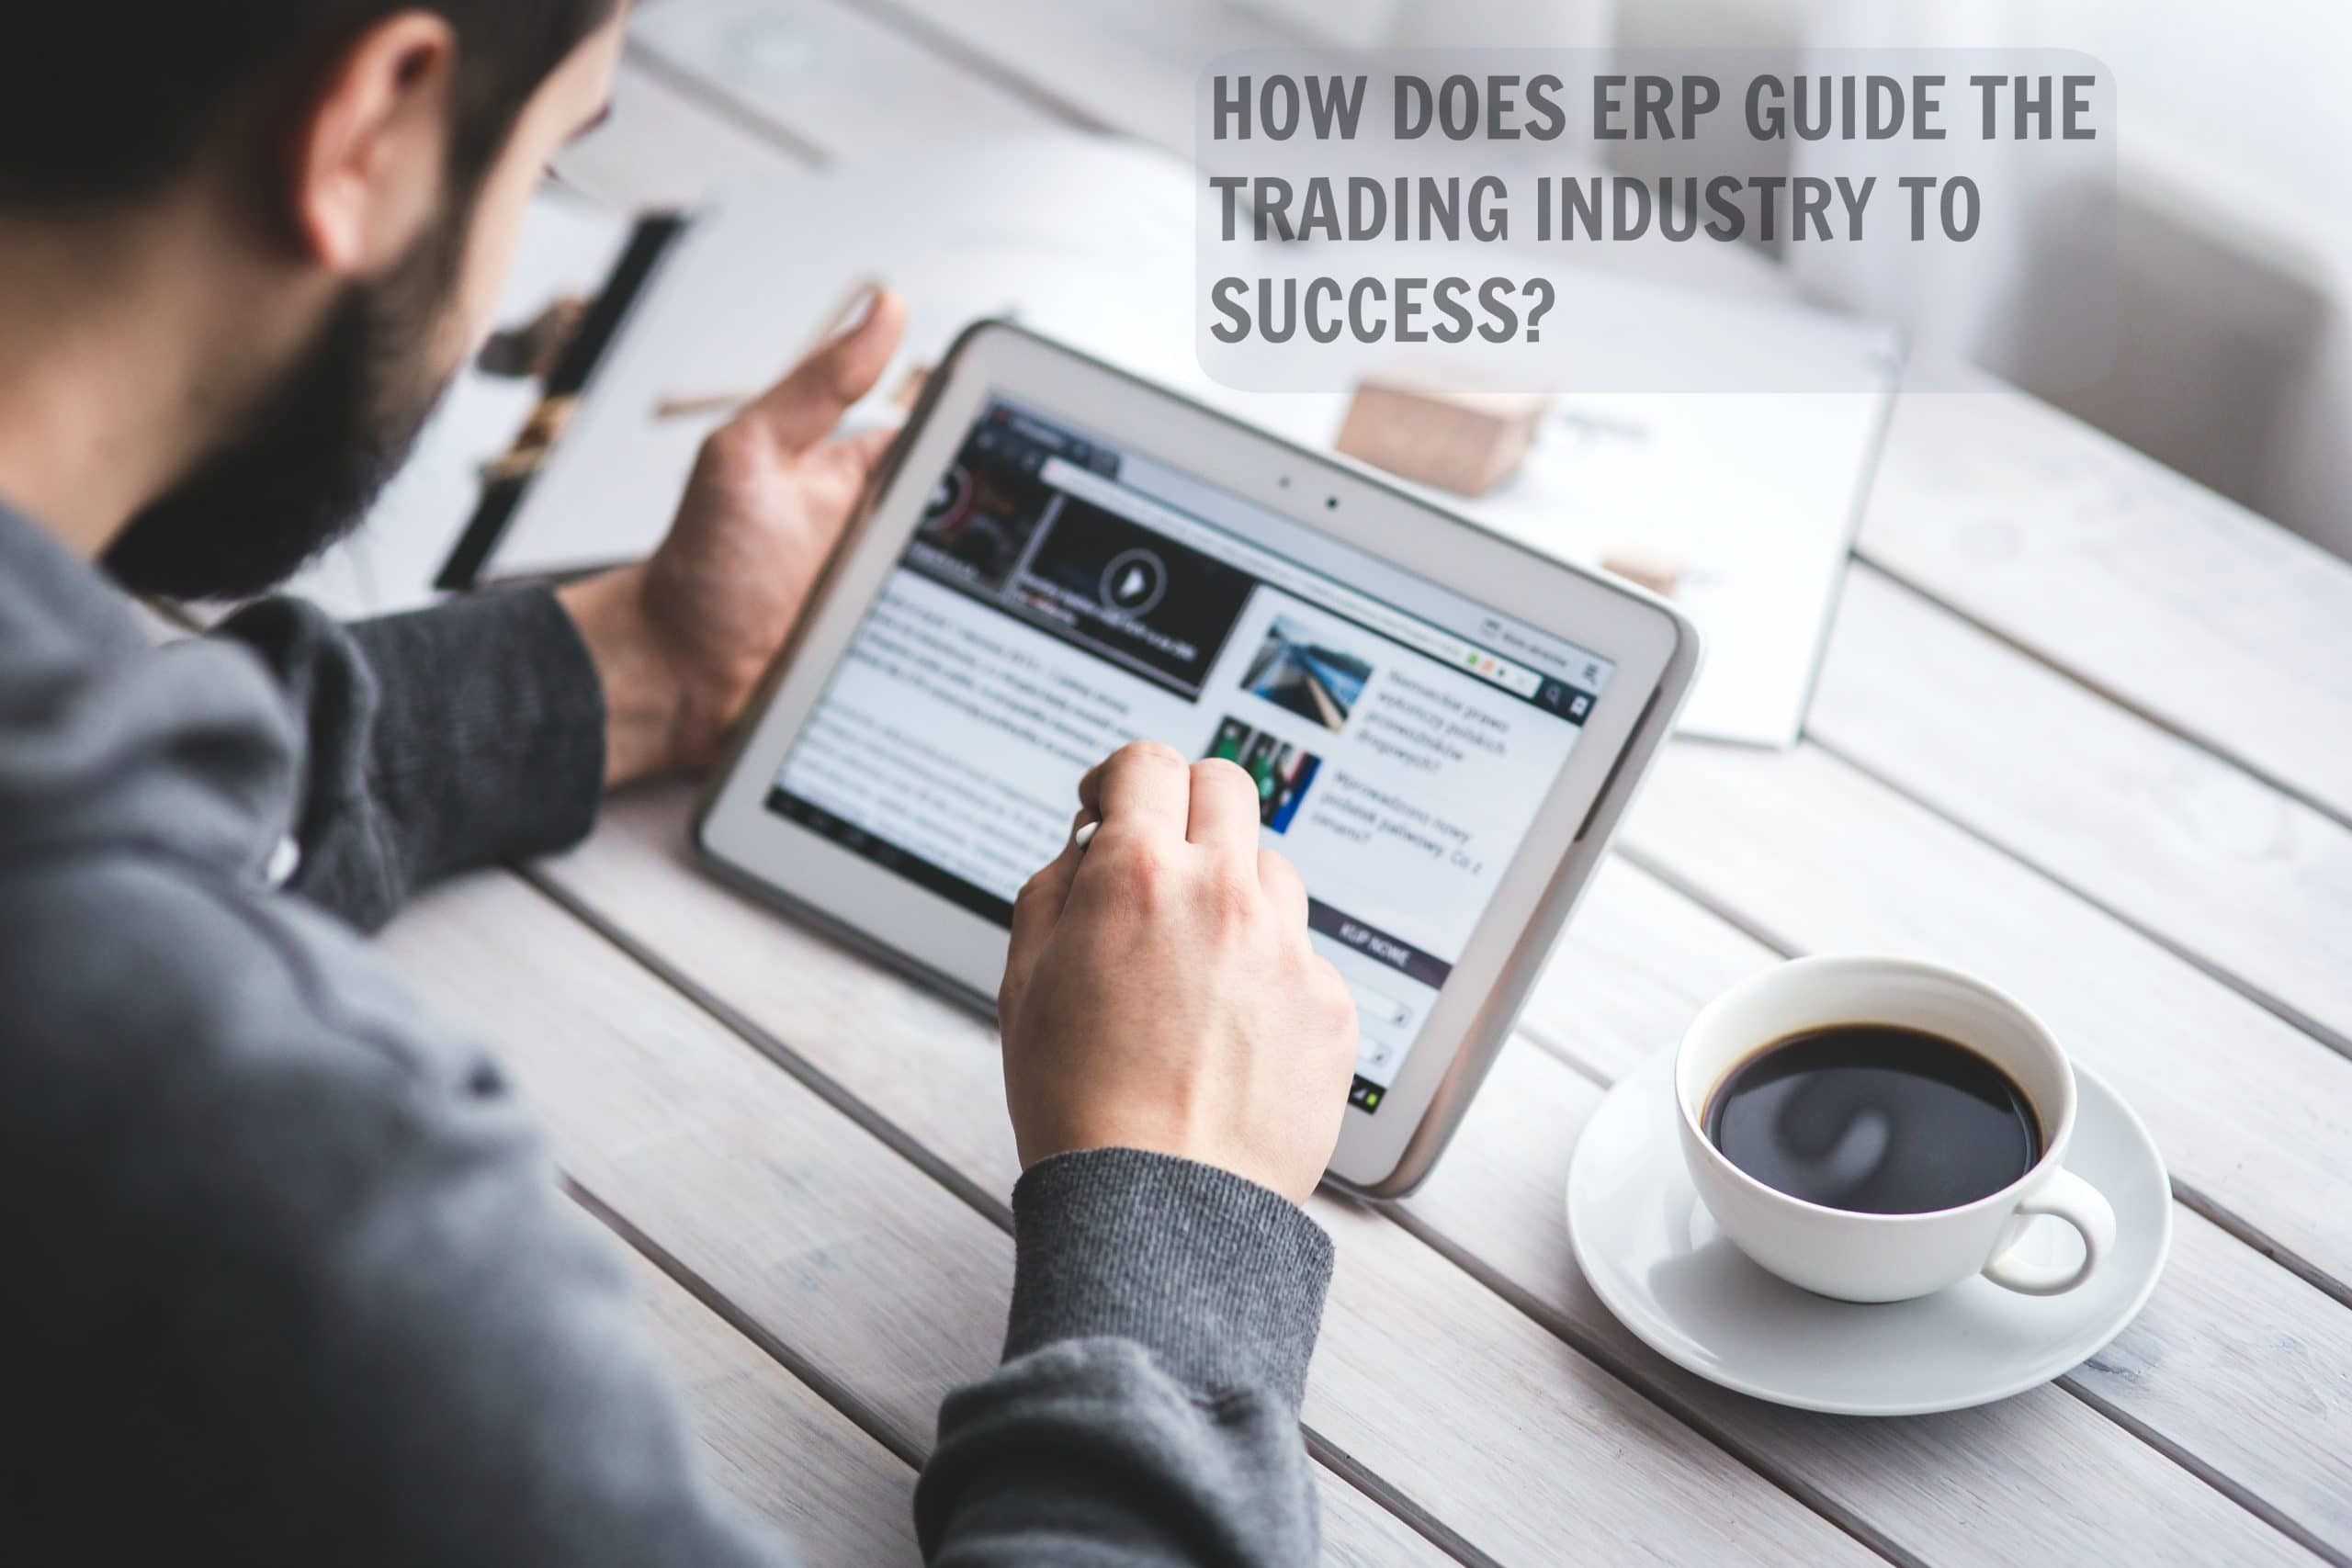 How does ERP guide the Trading Industry to Success